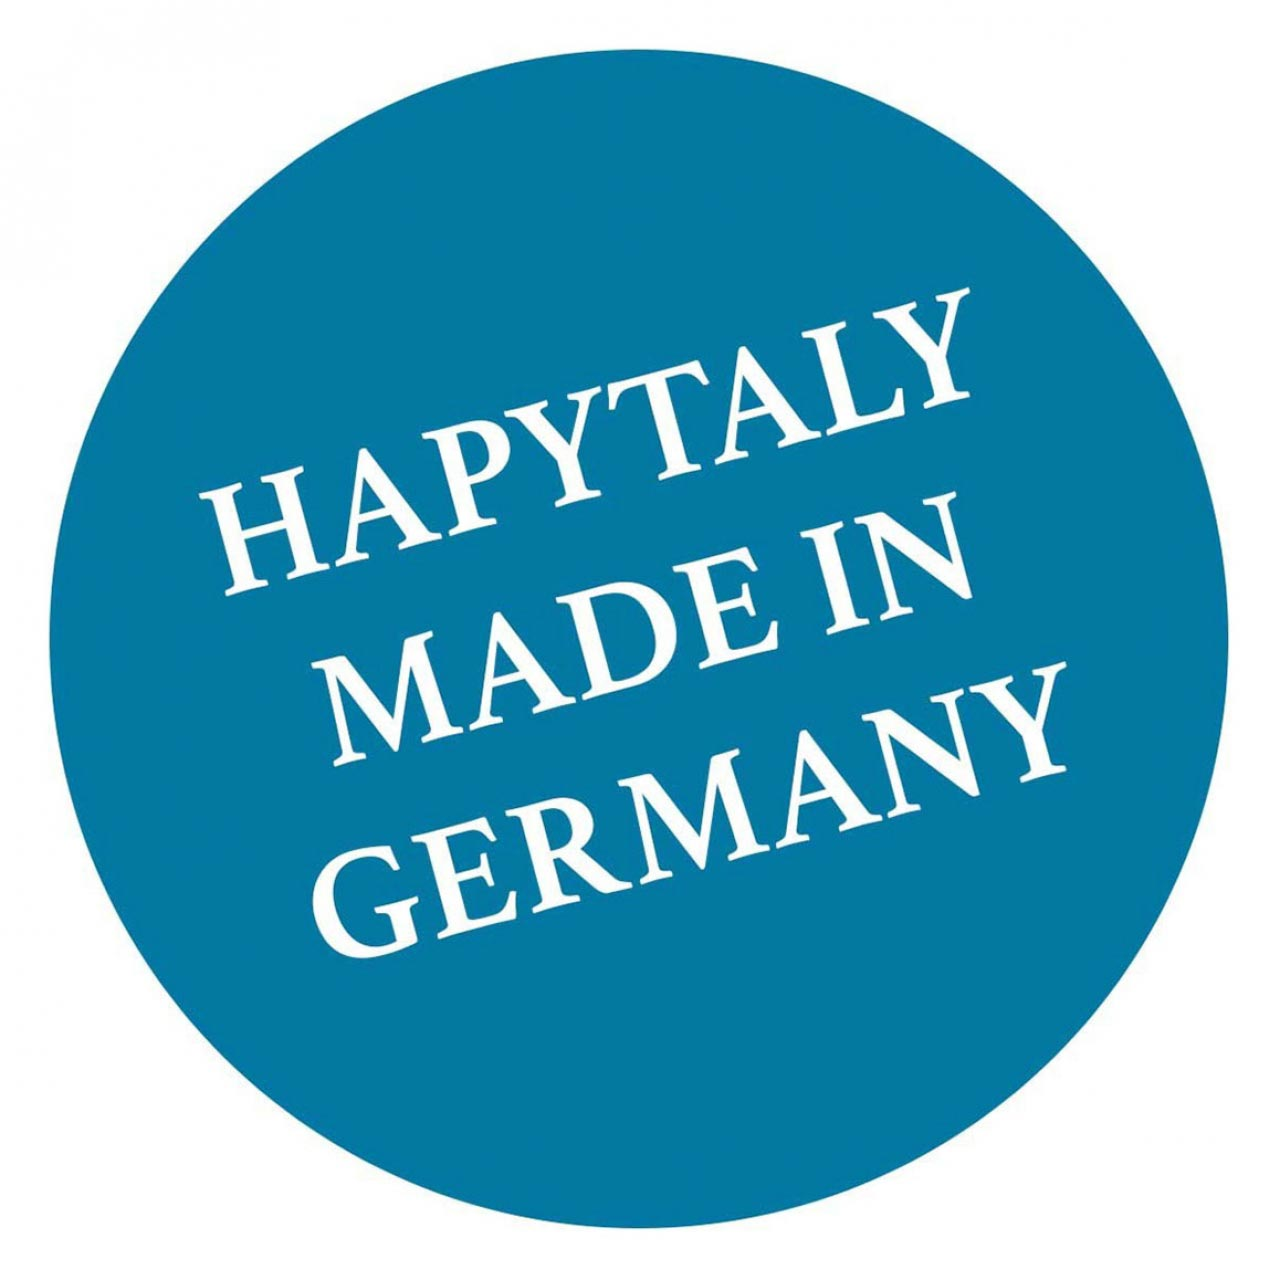 Hapytaly made in Germany